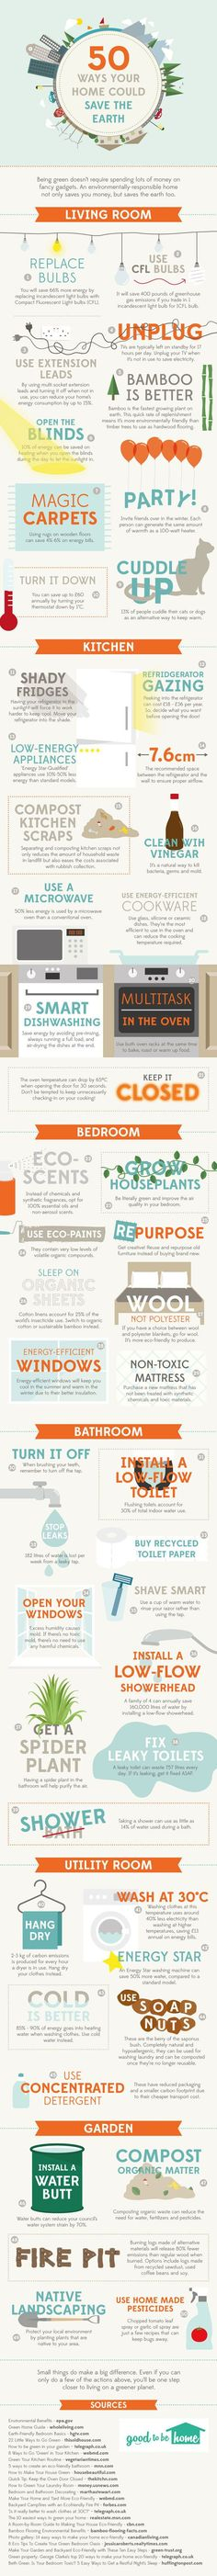 50 Ways Your Home Could Save The Earth: Apart from the suggestion to use the mic. 50 Ways Your Home Could Save The Earth: Apart from the suggestion to use the microwave for more cooking, these are excellent tips! Freetime Activities, Off The Grid, Eco Friendly House, Carbon Footprint, Green Life, Save The Planet, Energy Efficiency, Sustainable Living, Sustainable Energy